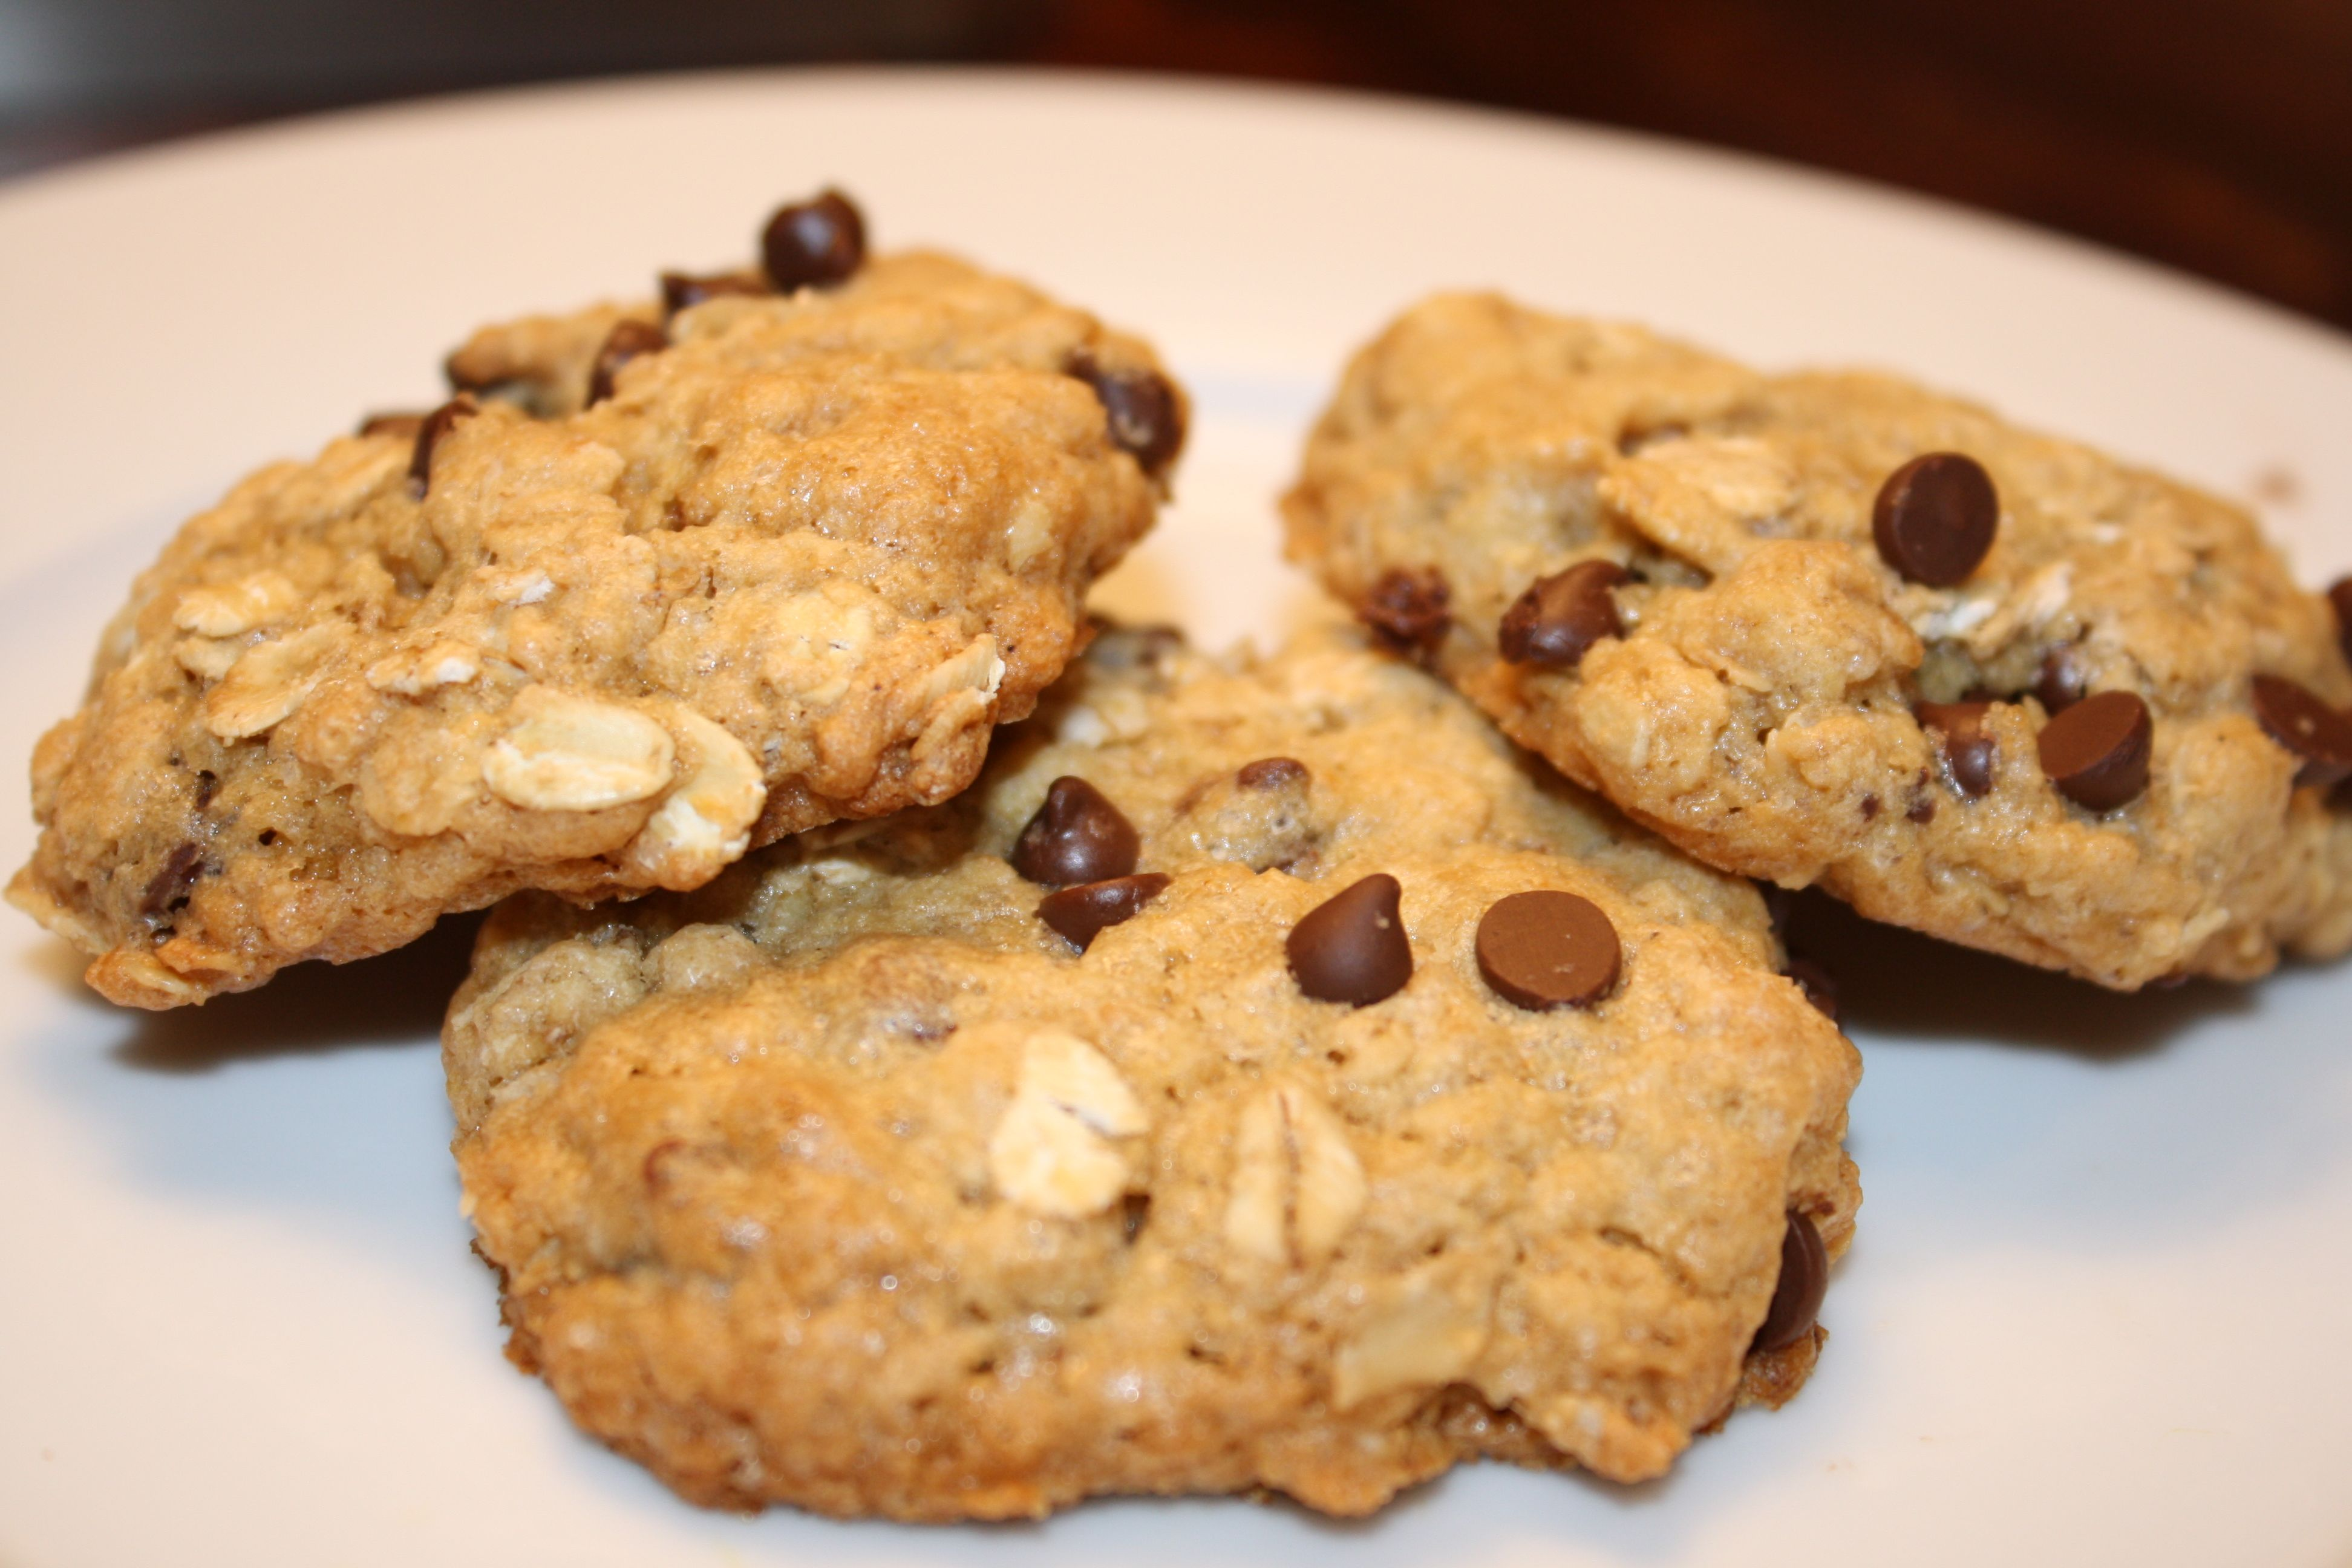 Gluten-Free-Oatmeal-Chocolate-Chip-Cookies